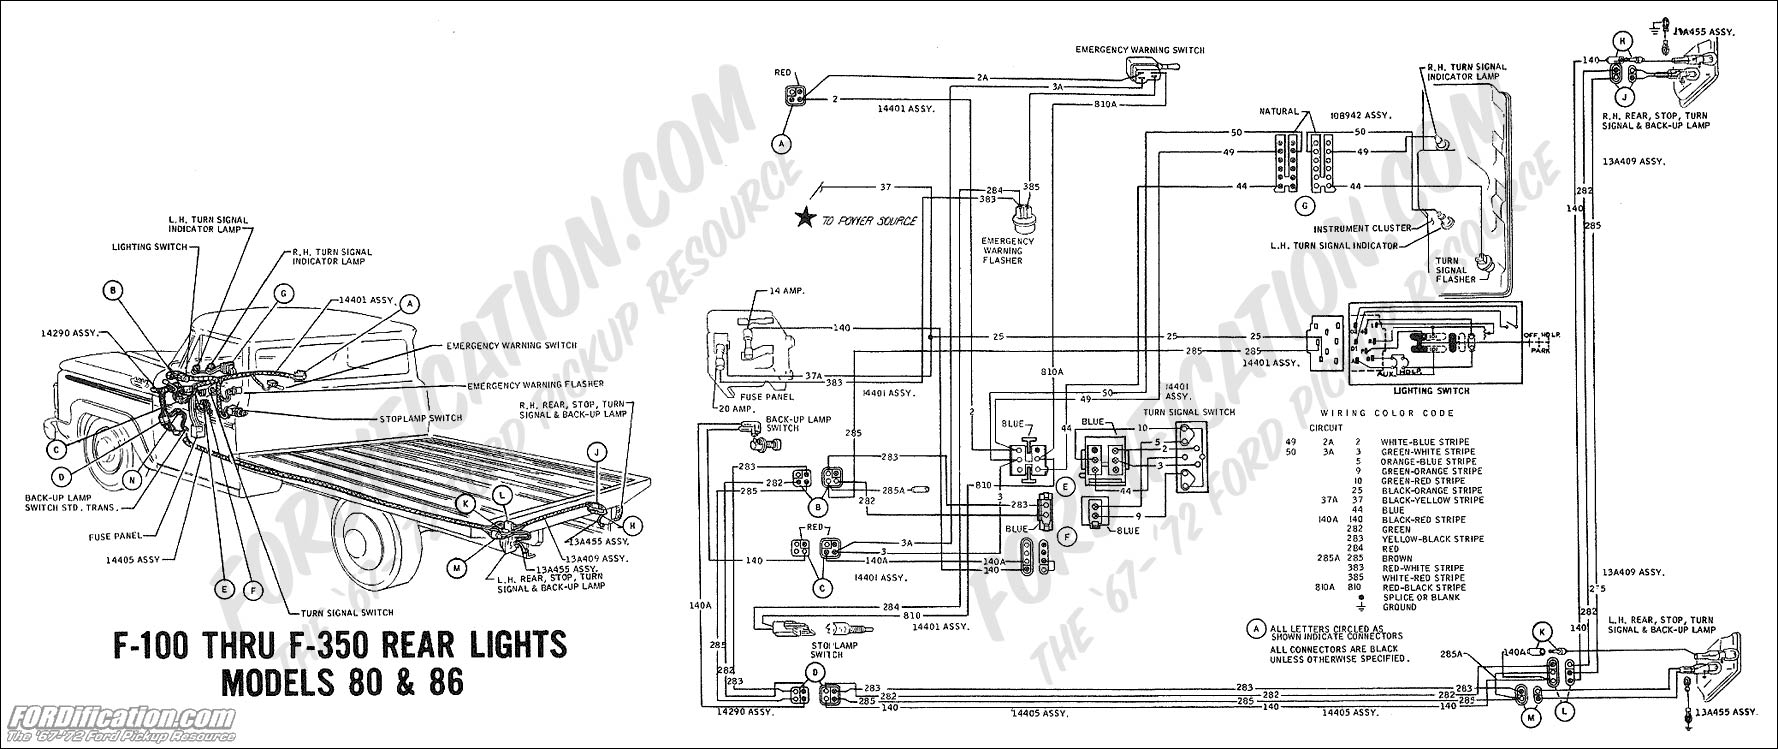 1991 f350 electrical wiring diagram for lights trusted wiring rh weneedradio org Electrical Wiring 1997 Blue Bird Wiring-Diagram